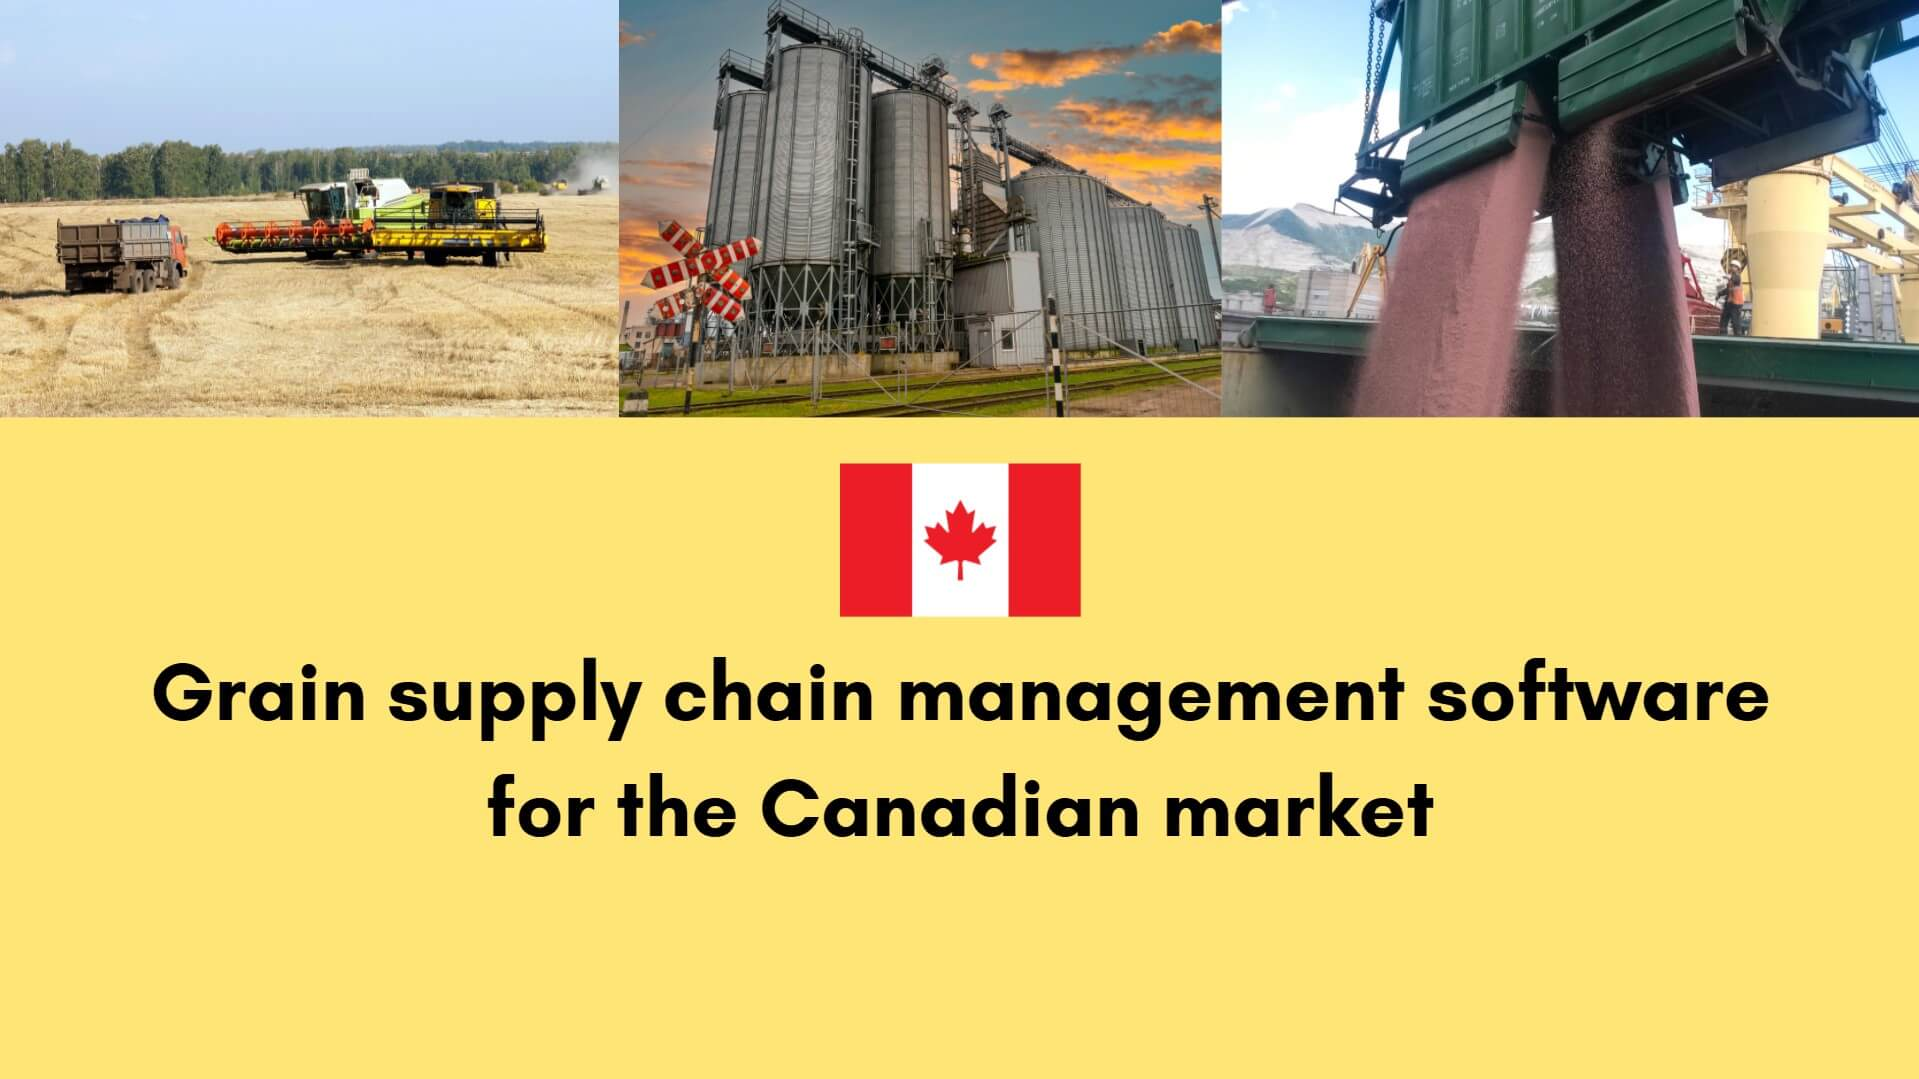 Grain supply chain management software for the Canadian market